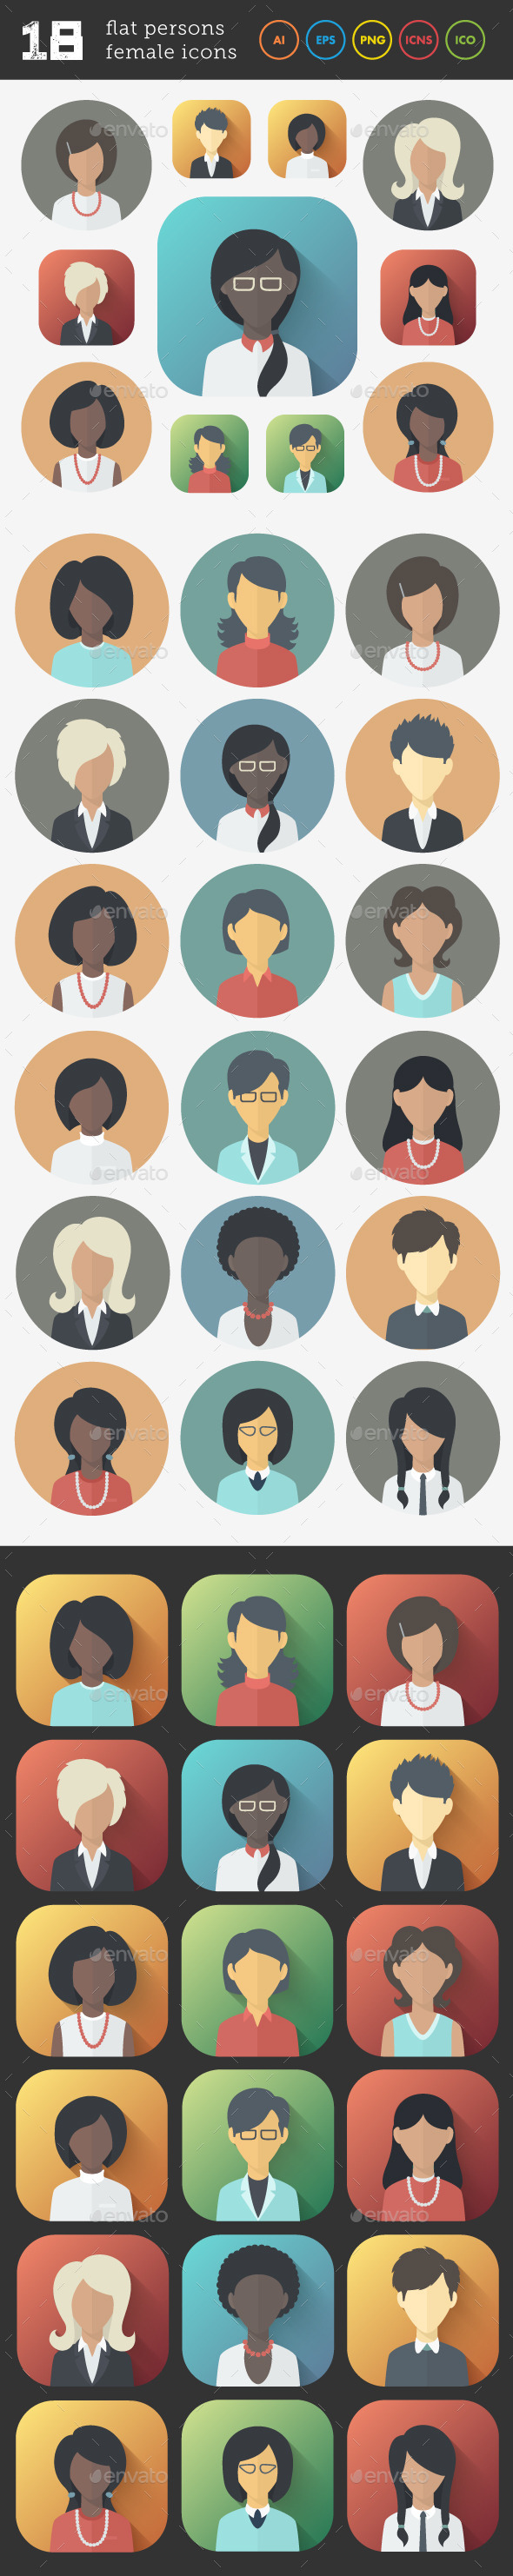 GraphicRiver Flat Icons Set of Female Persons 9333117